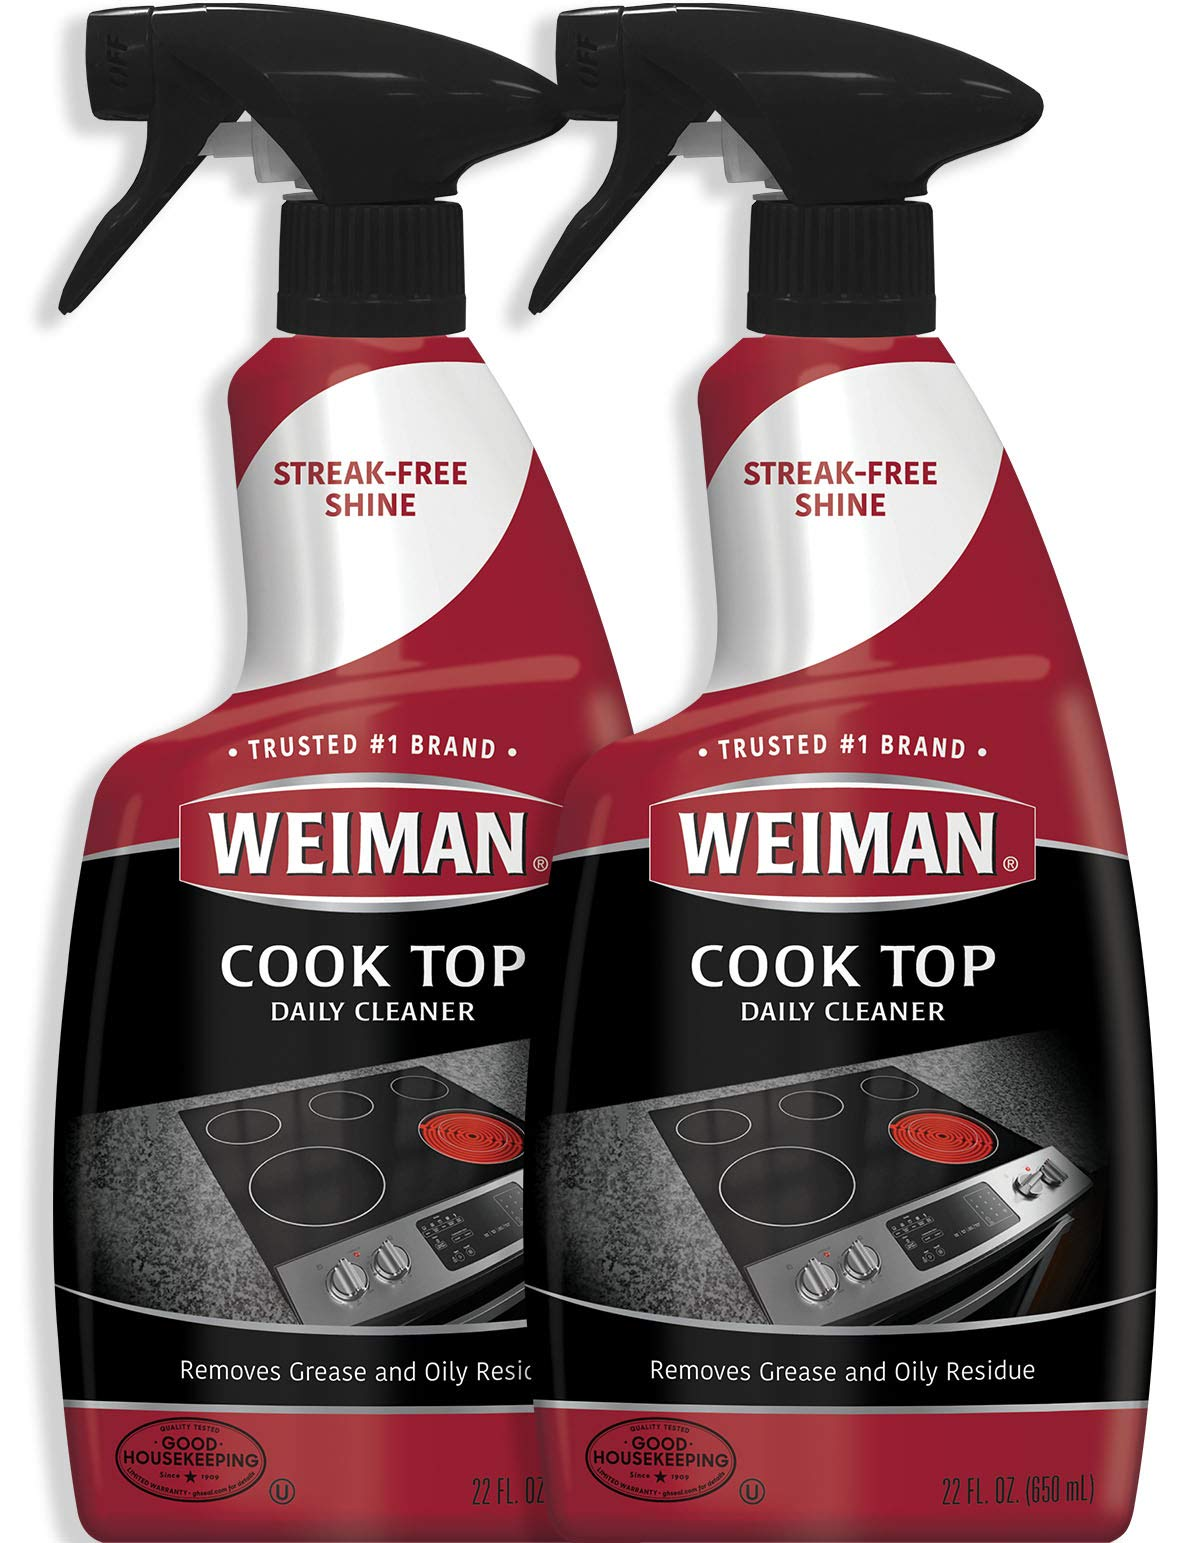 Weiman Cooktop Cleaner for Daily Use (2 Pack) Streak Free, Residue Free, Non-Abrasive Formula - 22 Ounce by Weiman